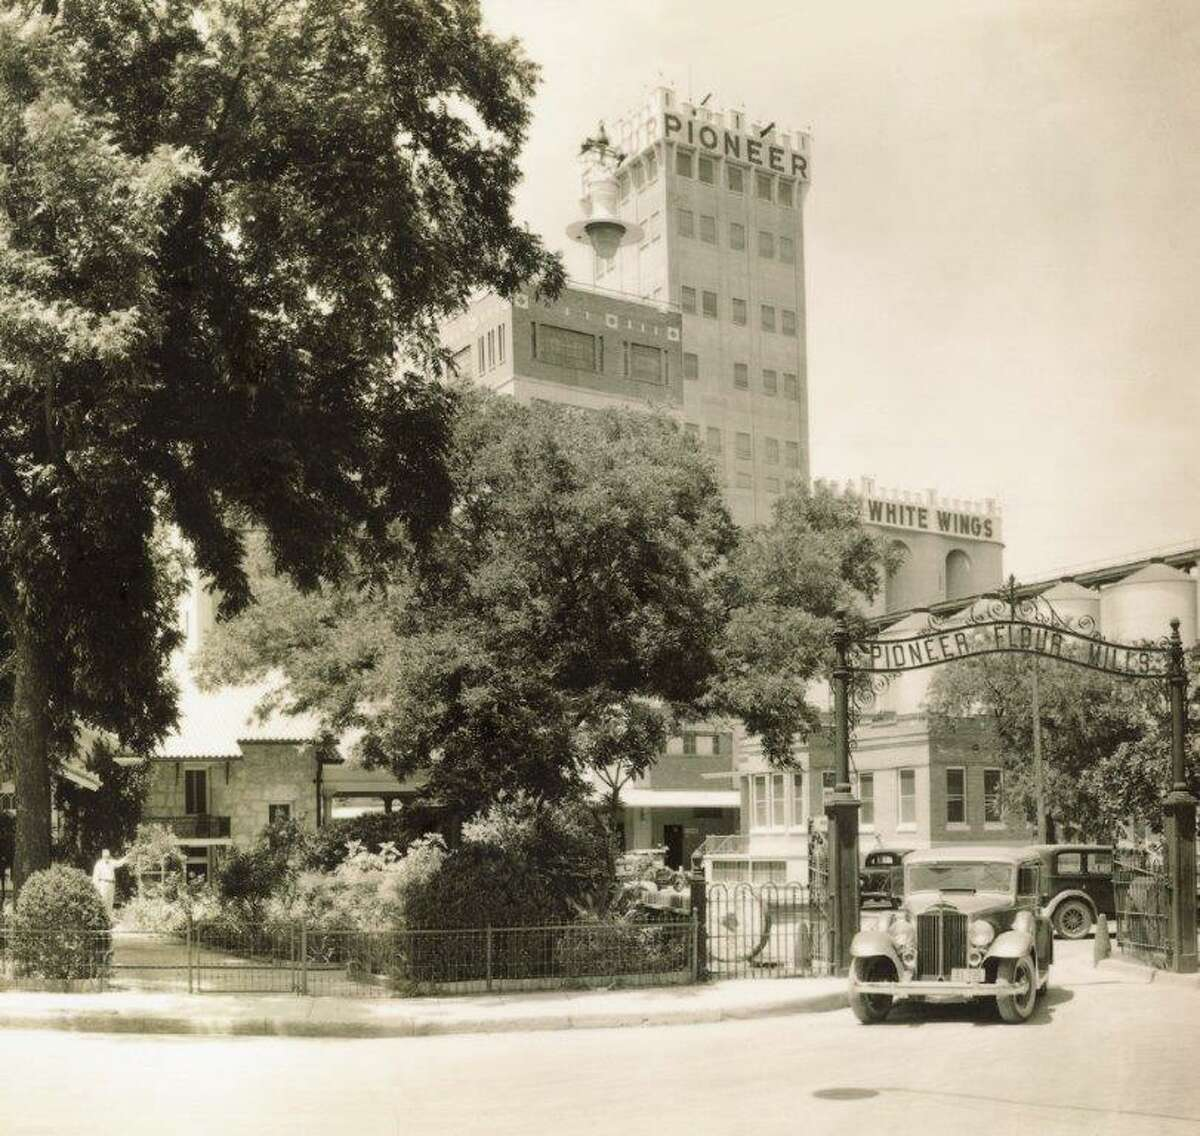 In this 1934 photo, an automobile goes through the entrance at Pioneer Flour Mills.